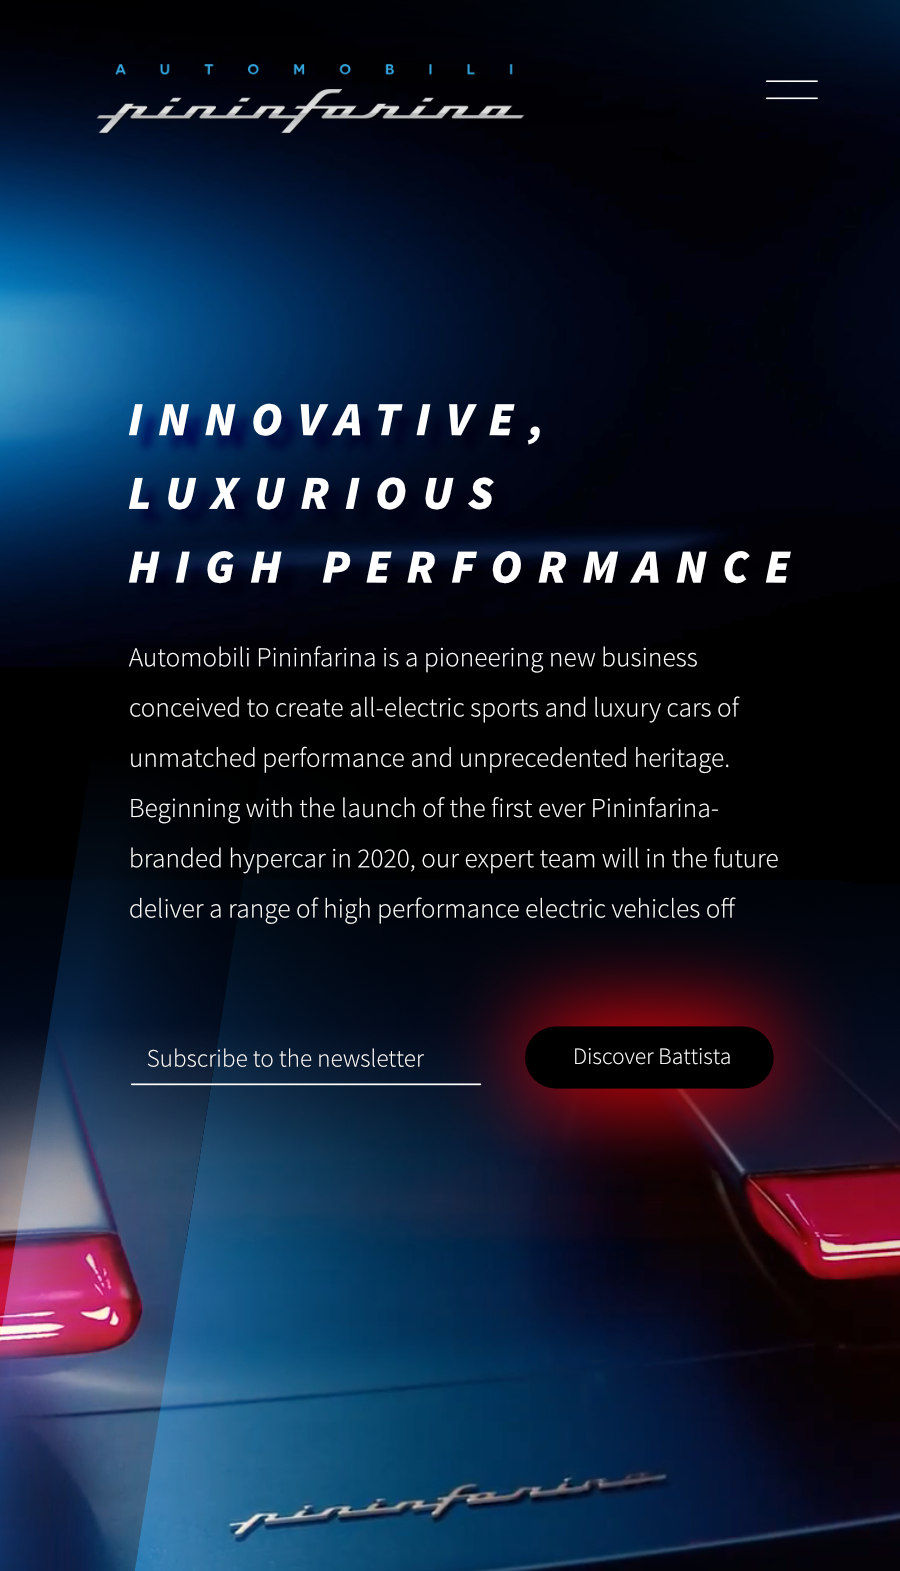 Automobili Pininfarina is a high-performance sports car and luxury electric vehicle manufacturer. Art direction, branding, uiux, web, landing pages, media management, front end development, website design. Meg Wehrlen